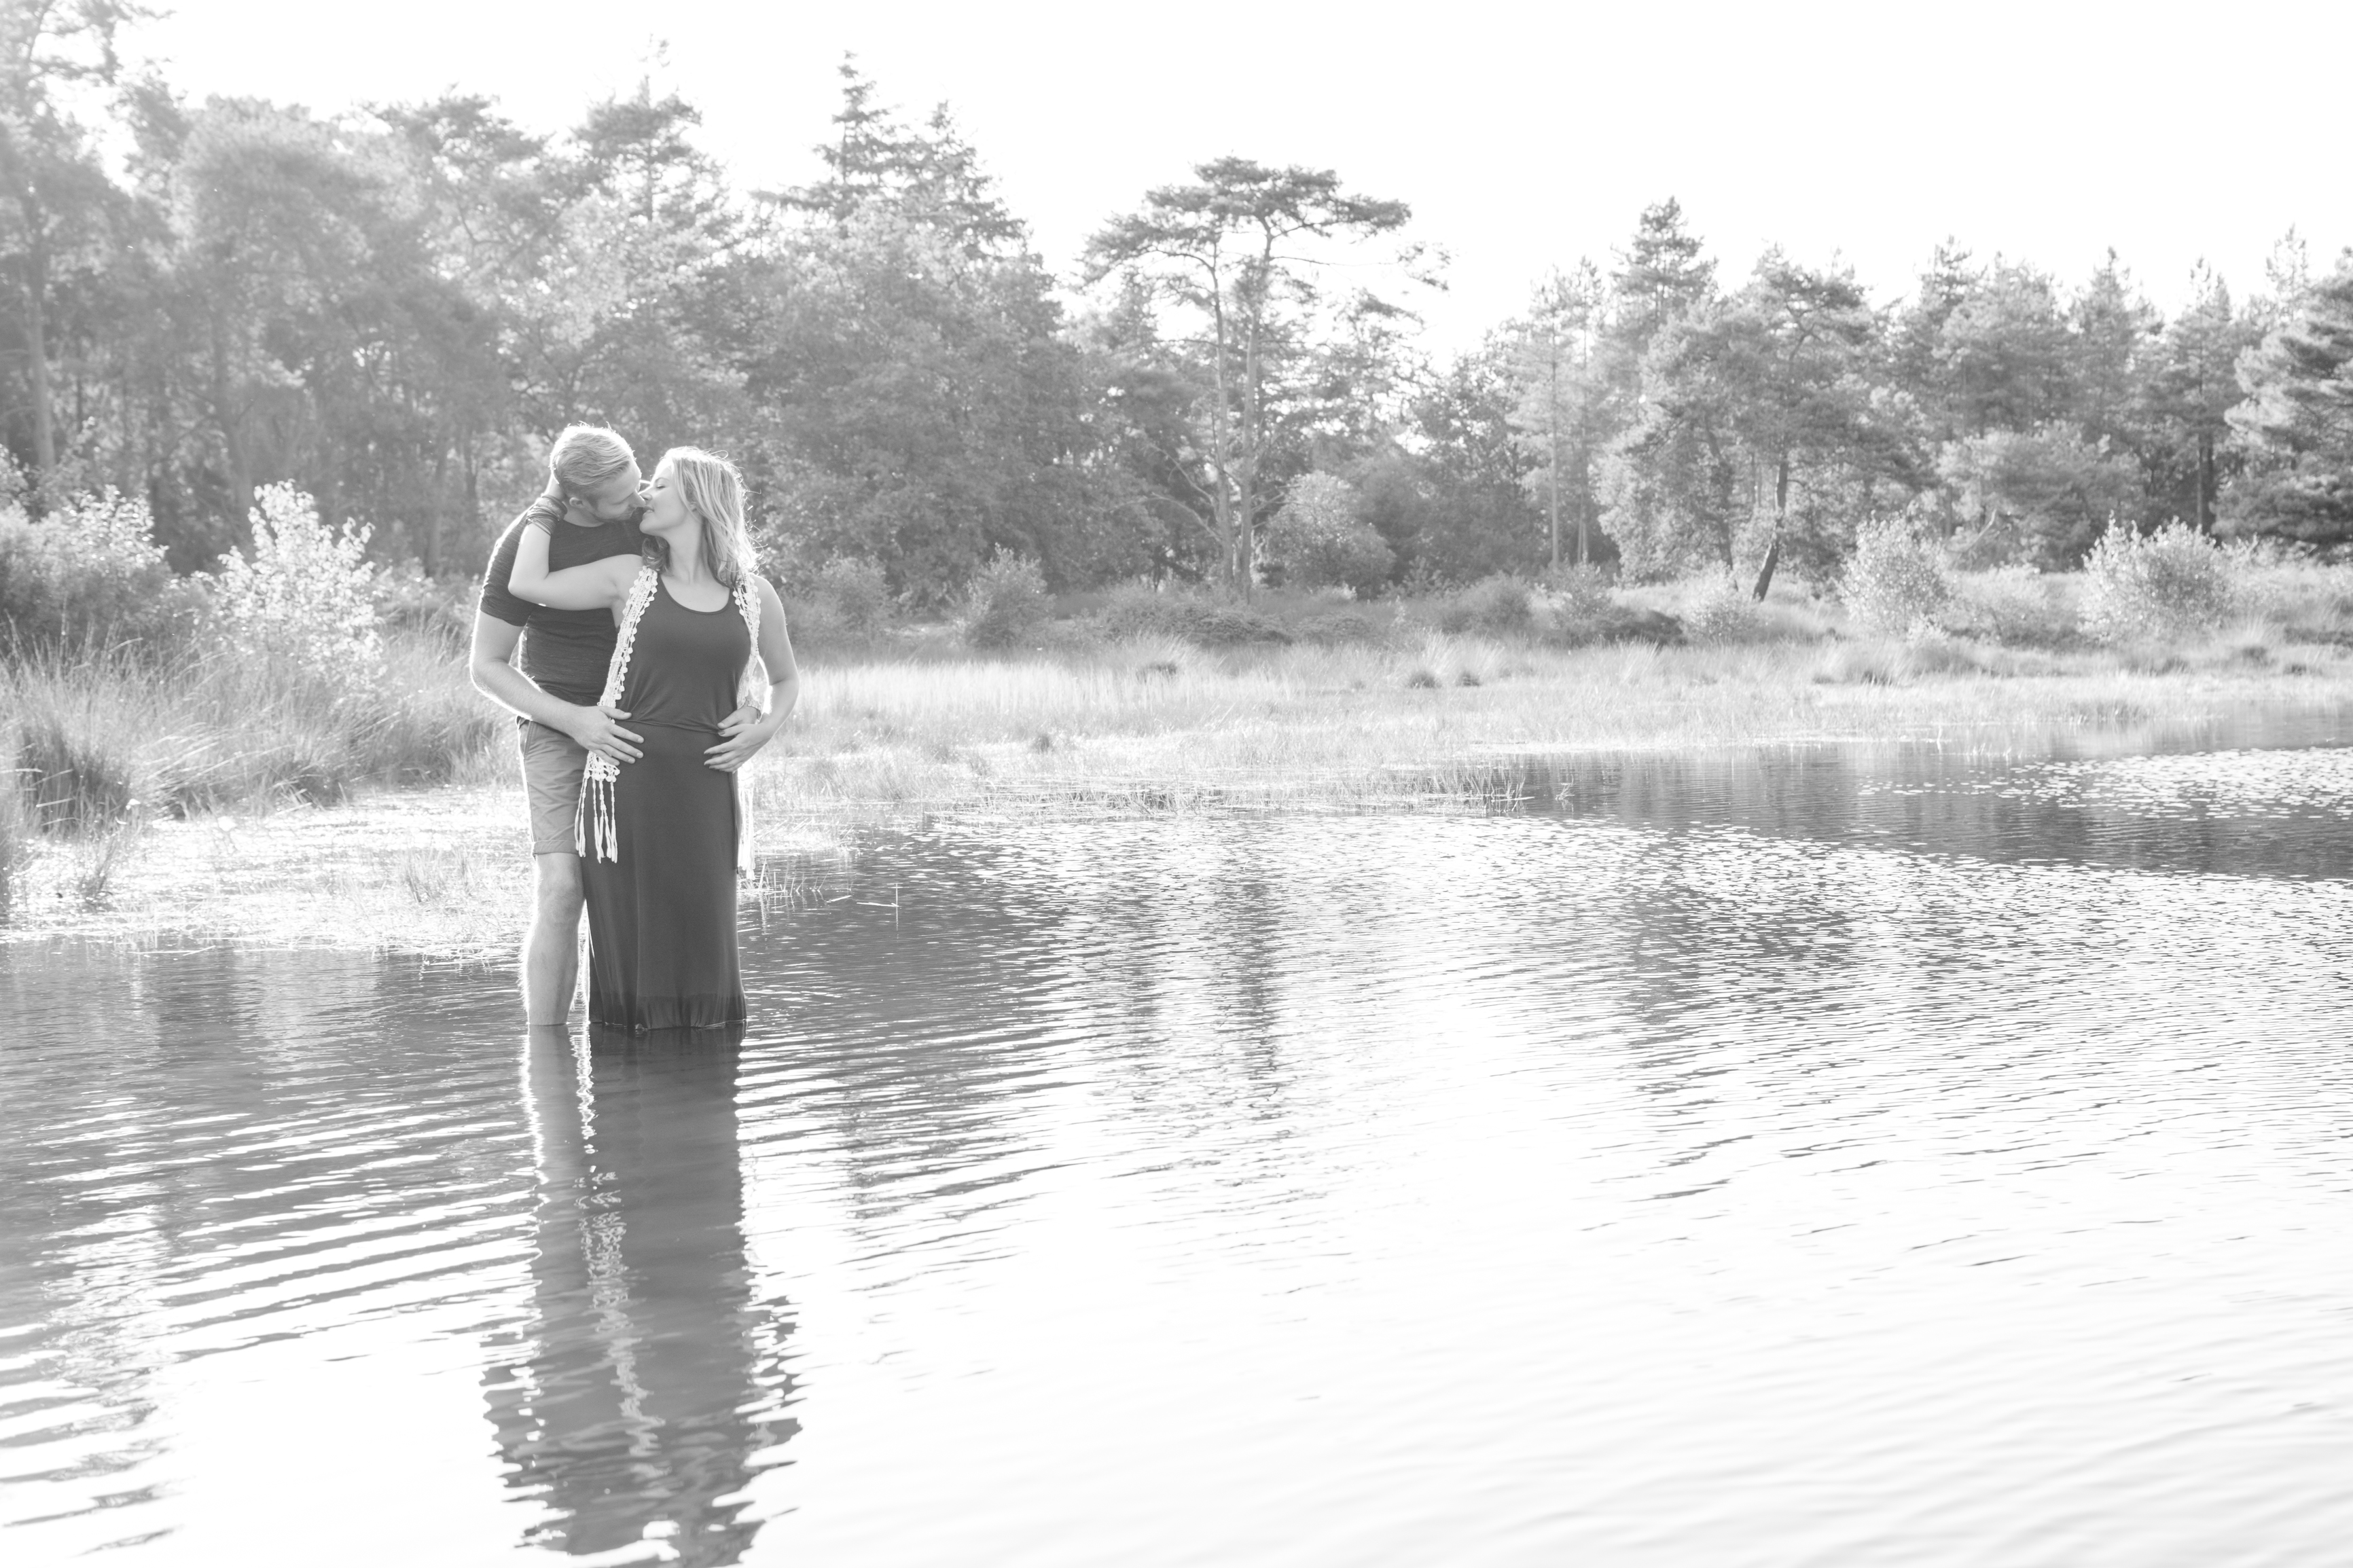 1. Esther en Peter Loveshoot in zw-1